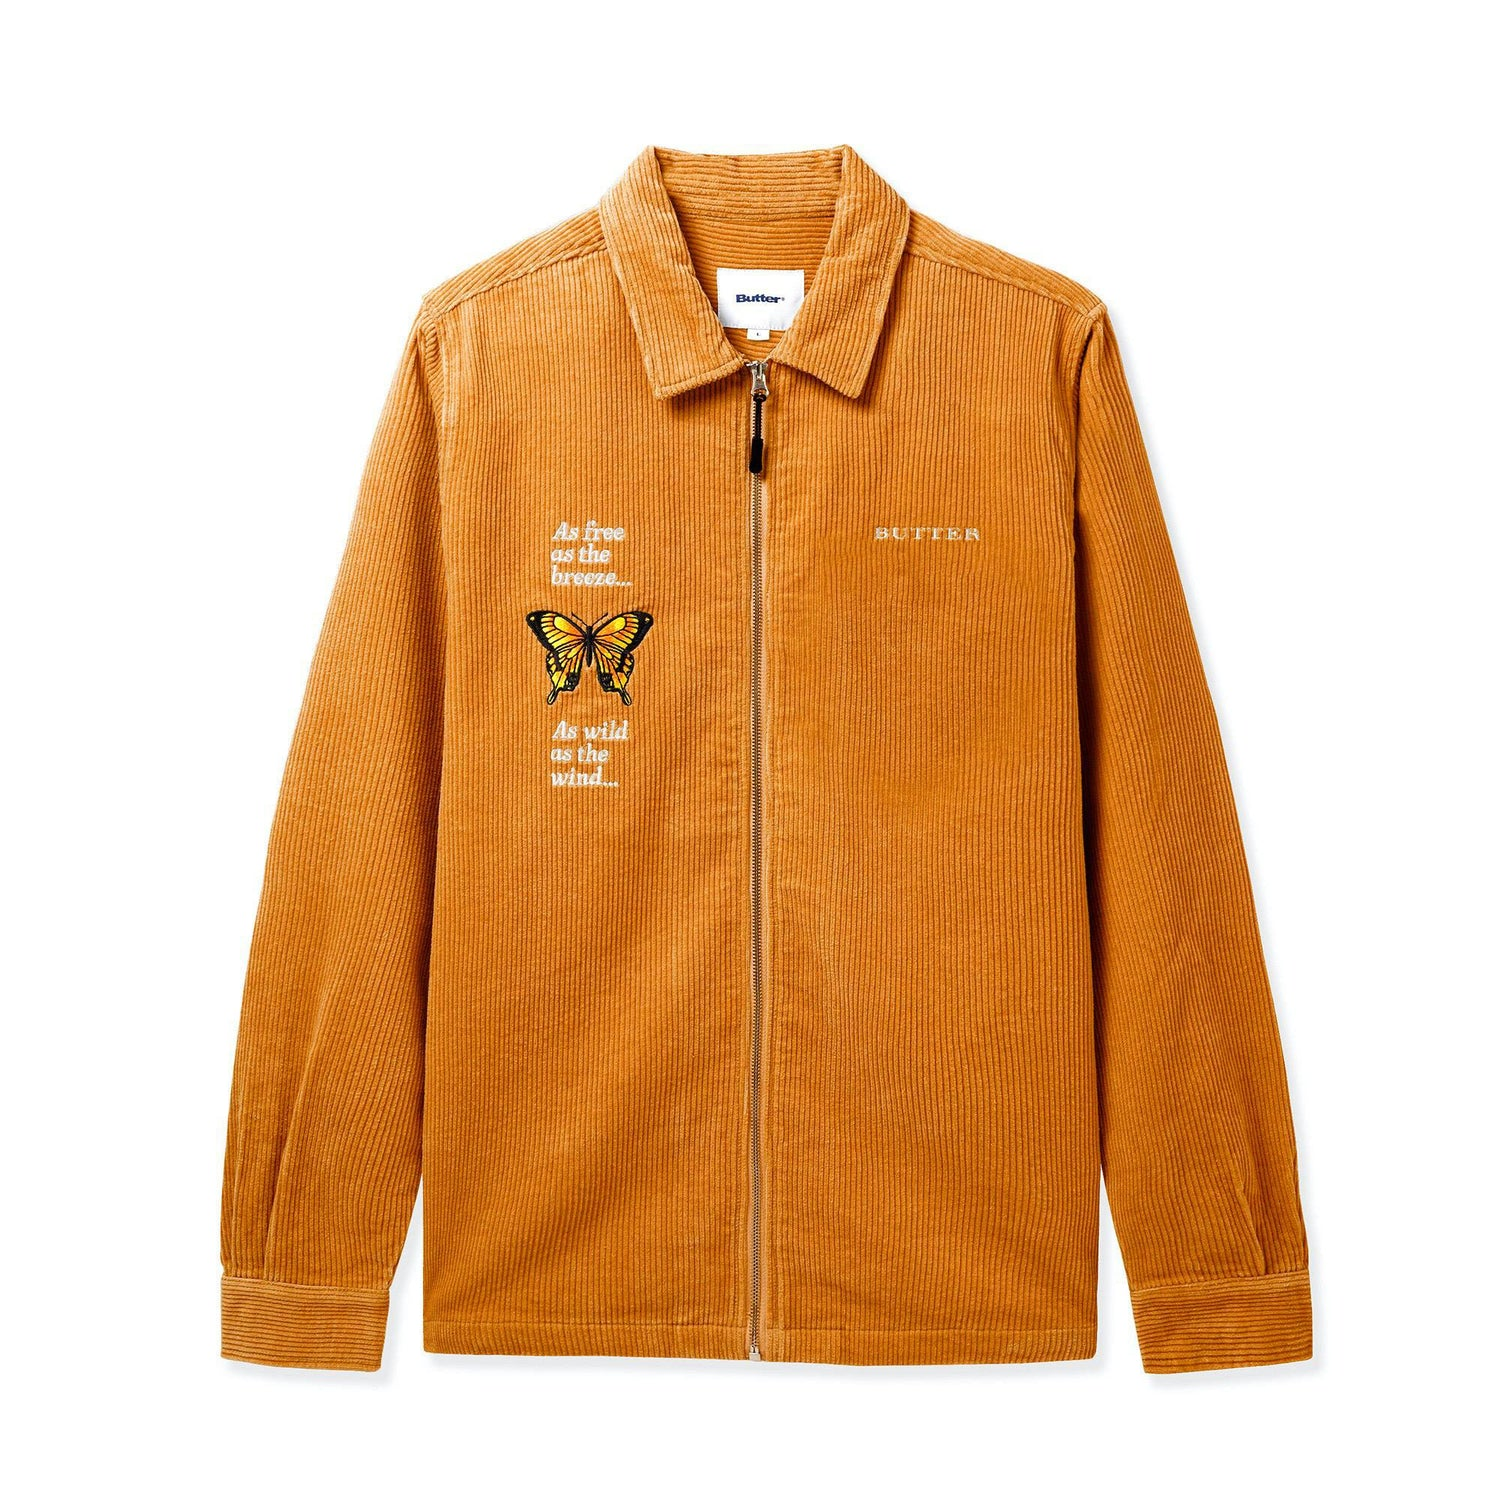 Butterfly L/S Workshirt, Camel